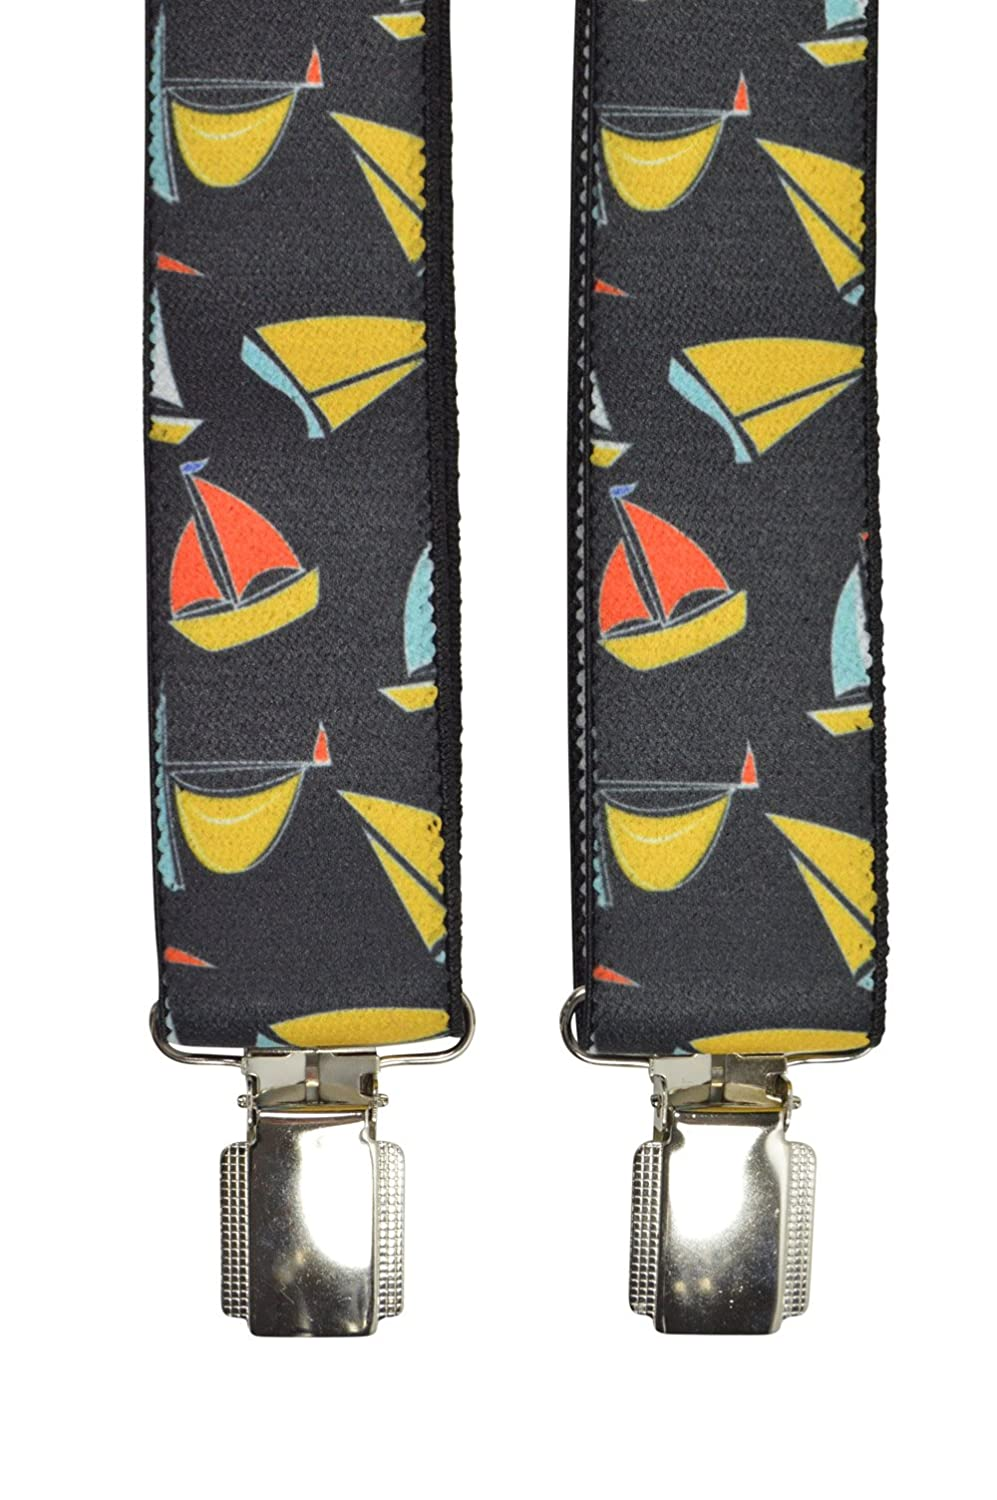 Children//Juniors 1-12 Years Clip on Braces//Suspenders with Sailing Boat Design